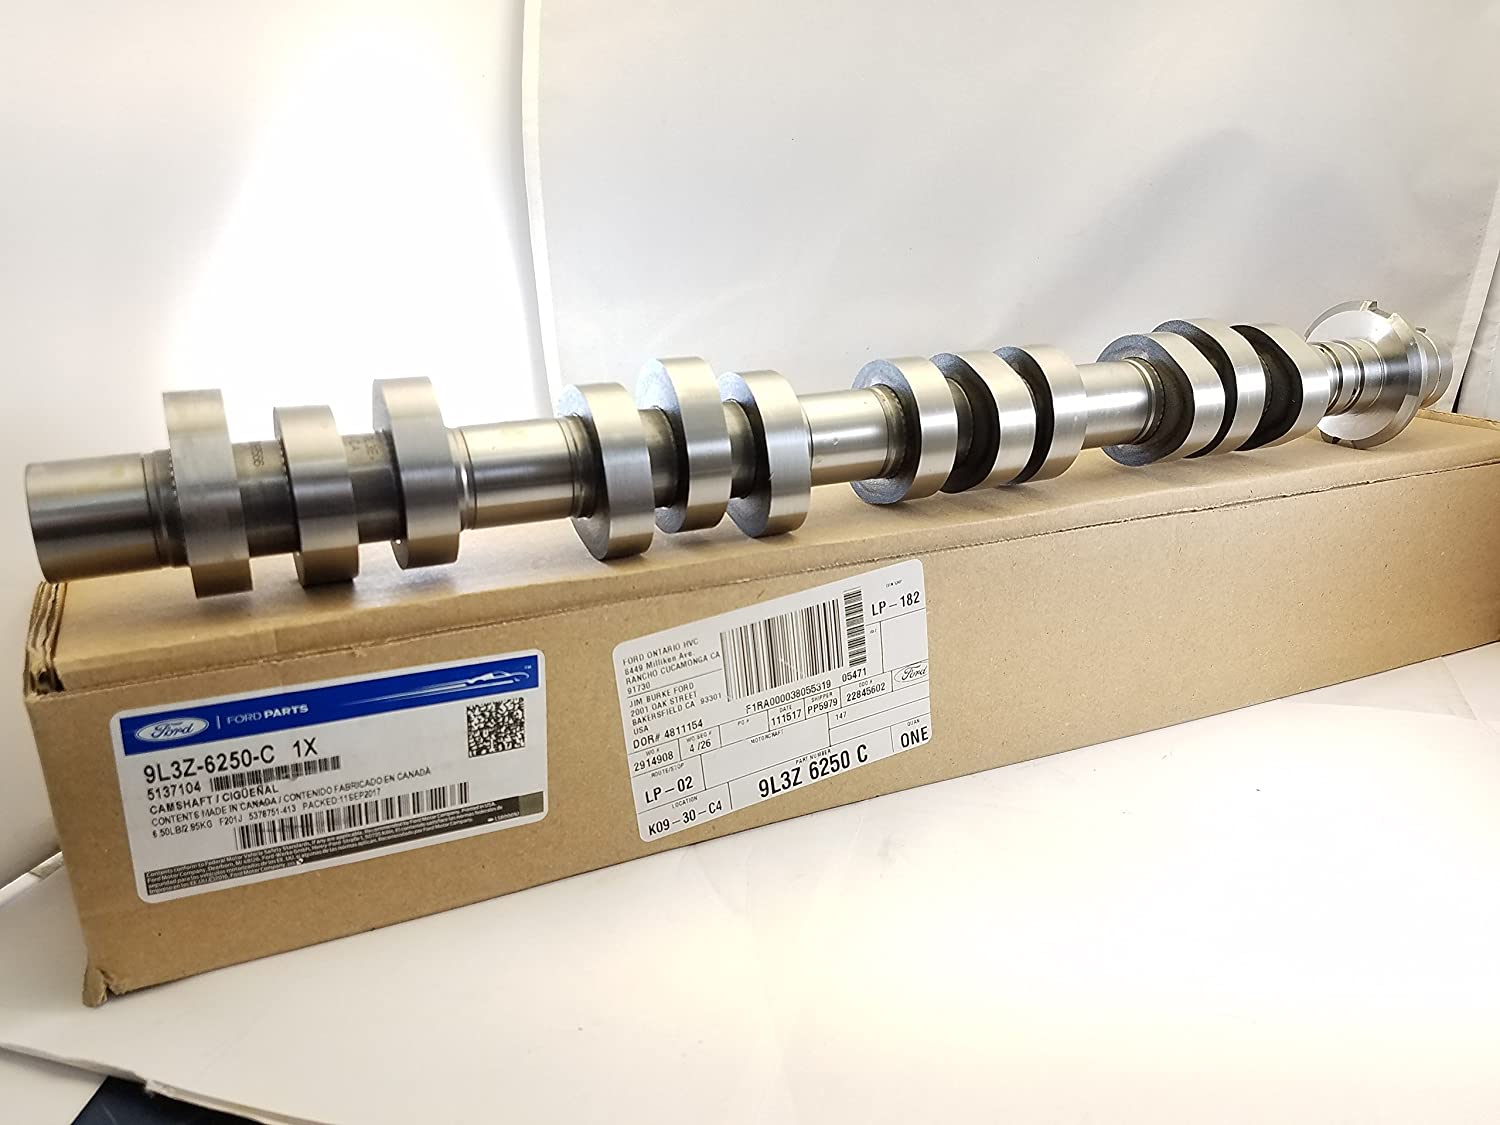 Engine Camshaft Ford 9L3Z-6250-C